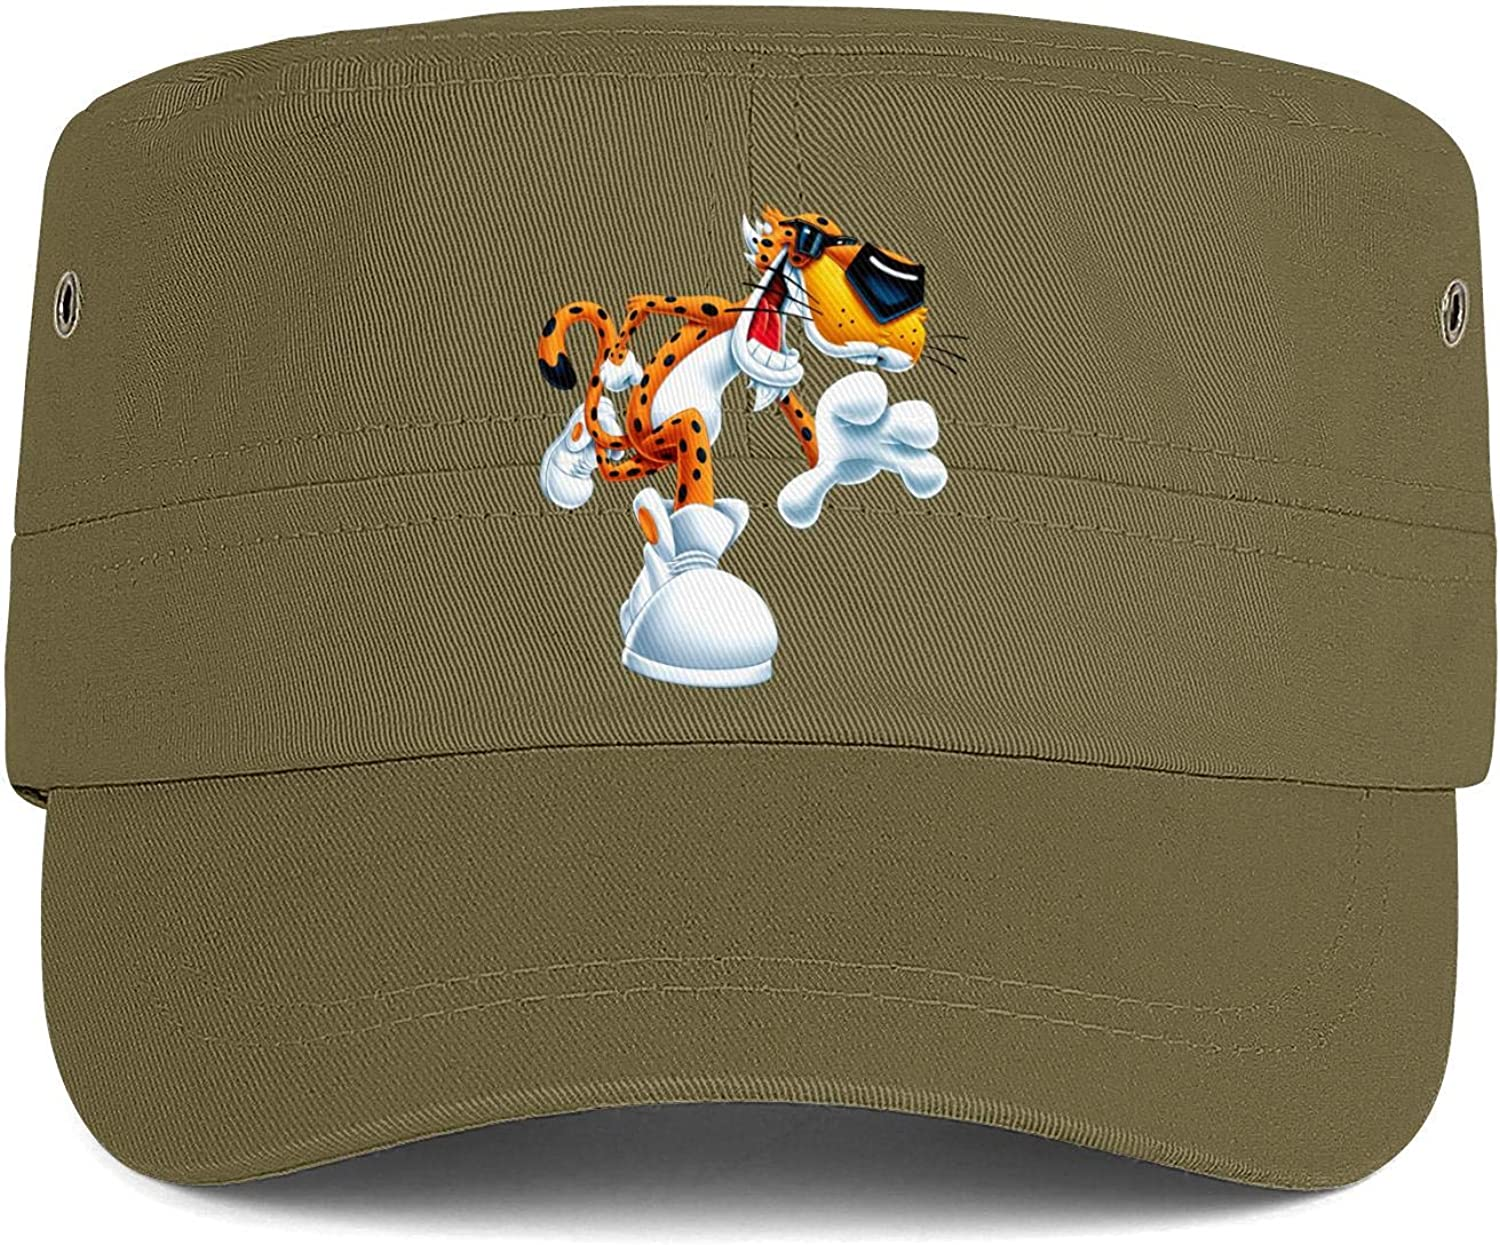 Chester Cheetah Too Cool Cheetos Army Cap Youth Athletic Baseball Round Cap Men Women